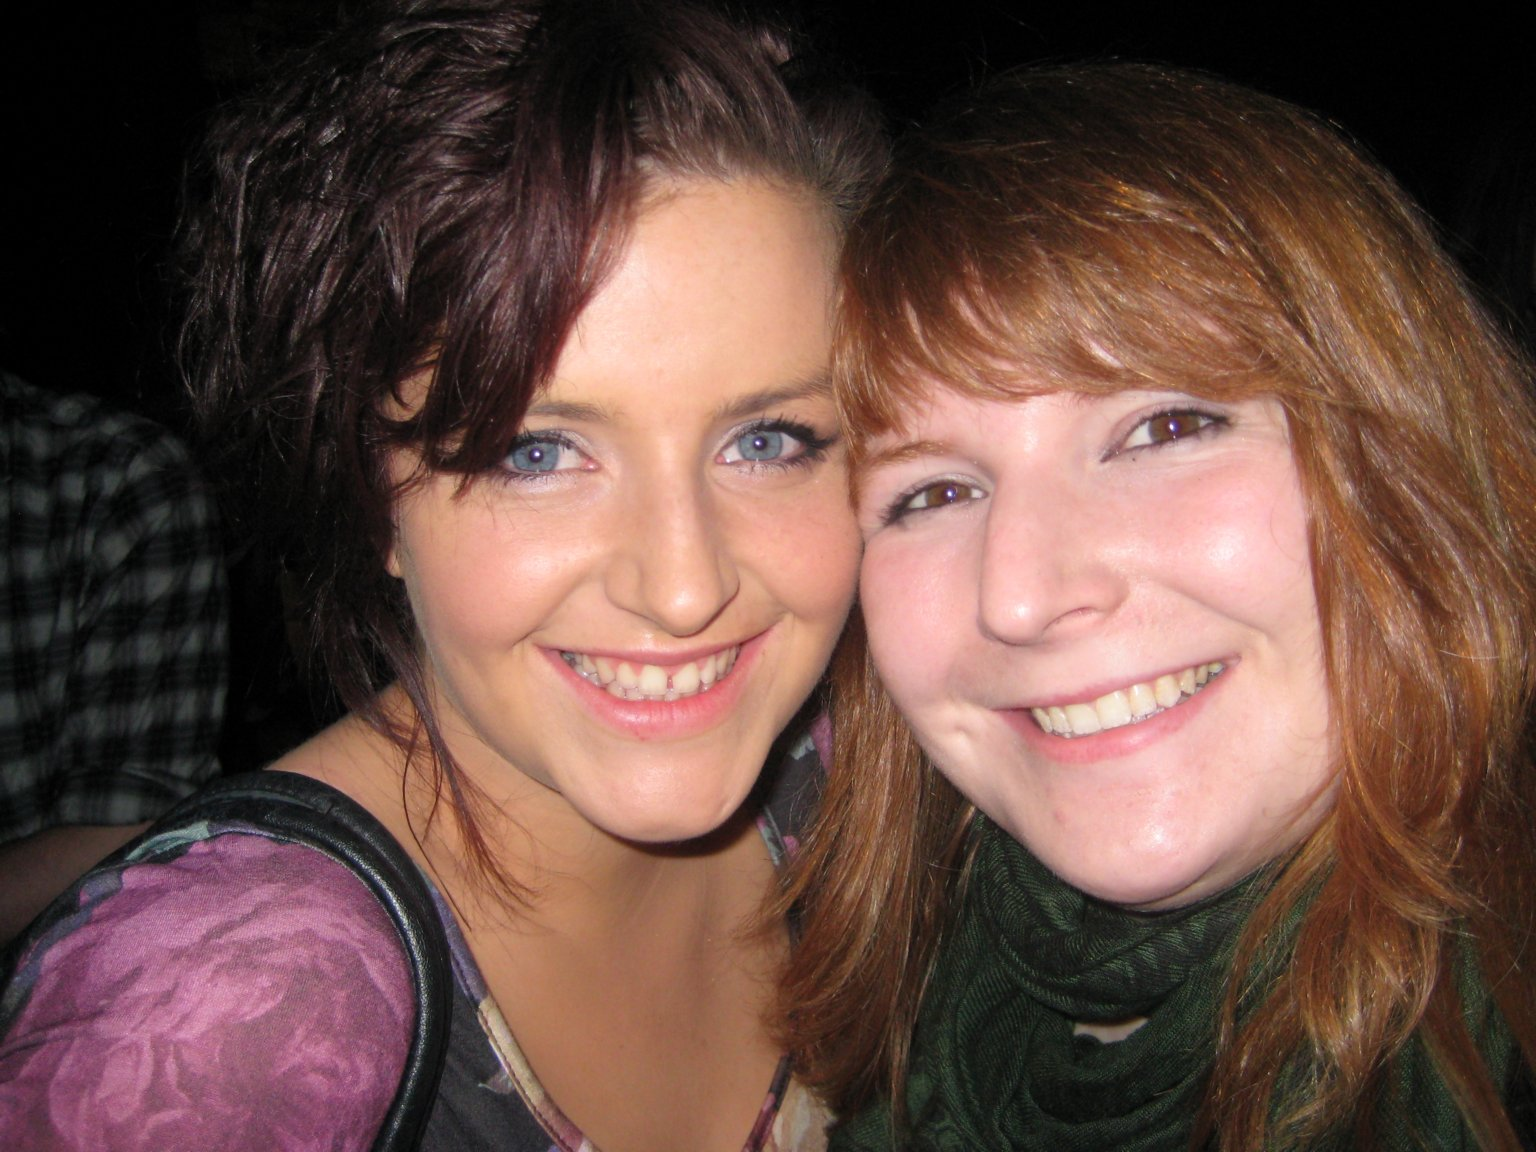 me and Áine at the gig